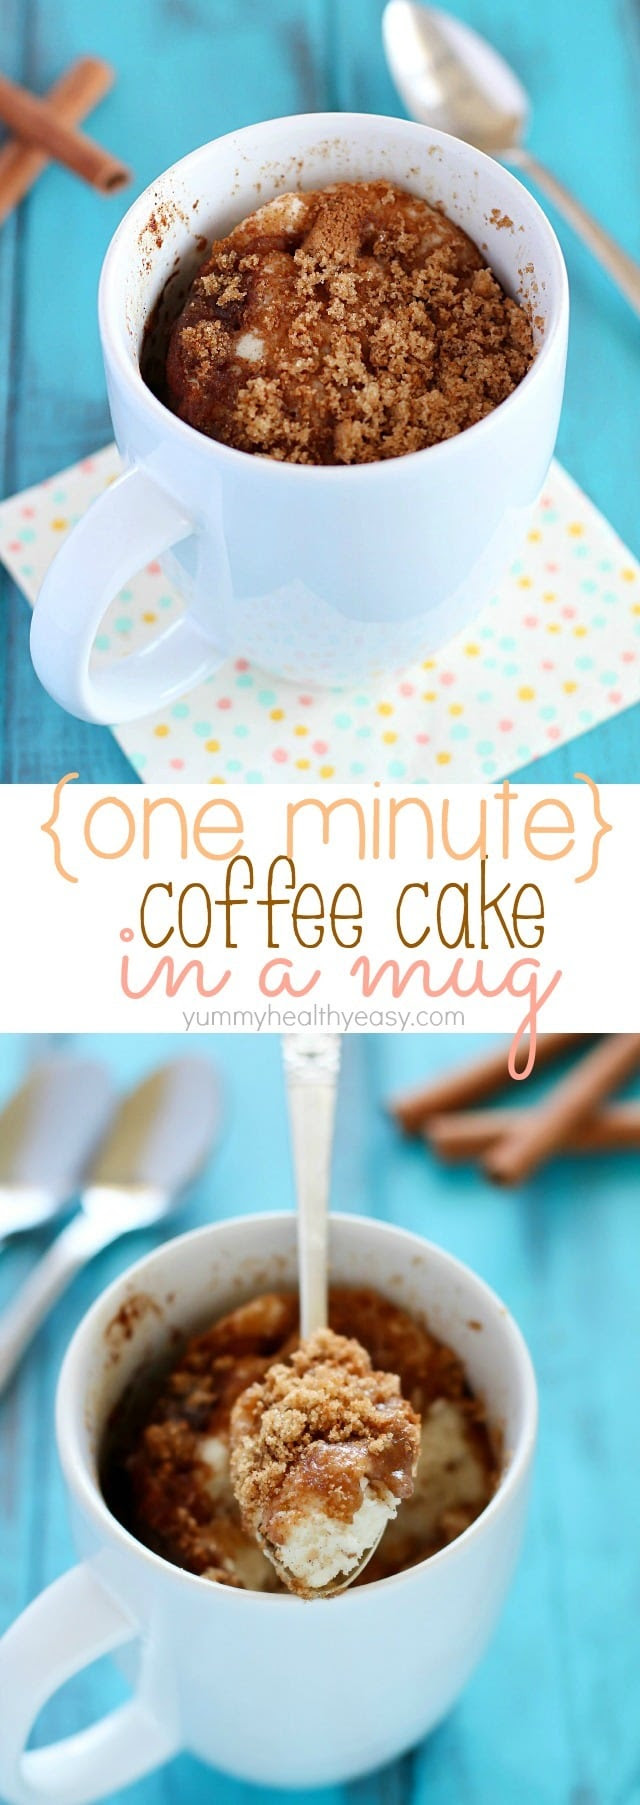 One-Minute Coffee Cake in a Mug - Yummy Healthy Easy